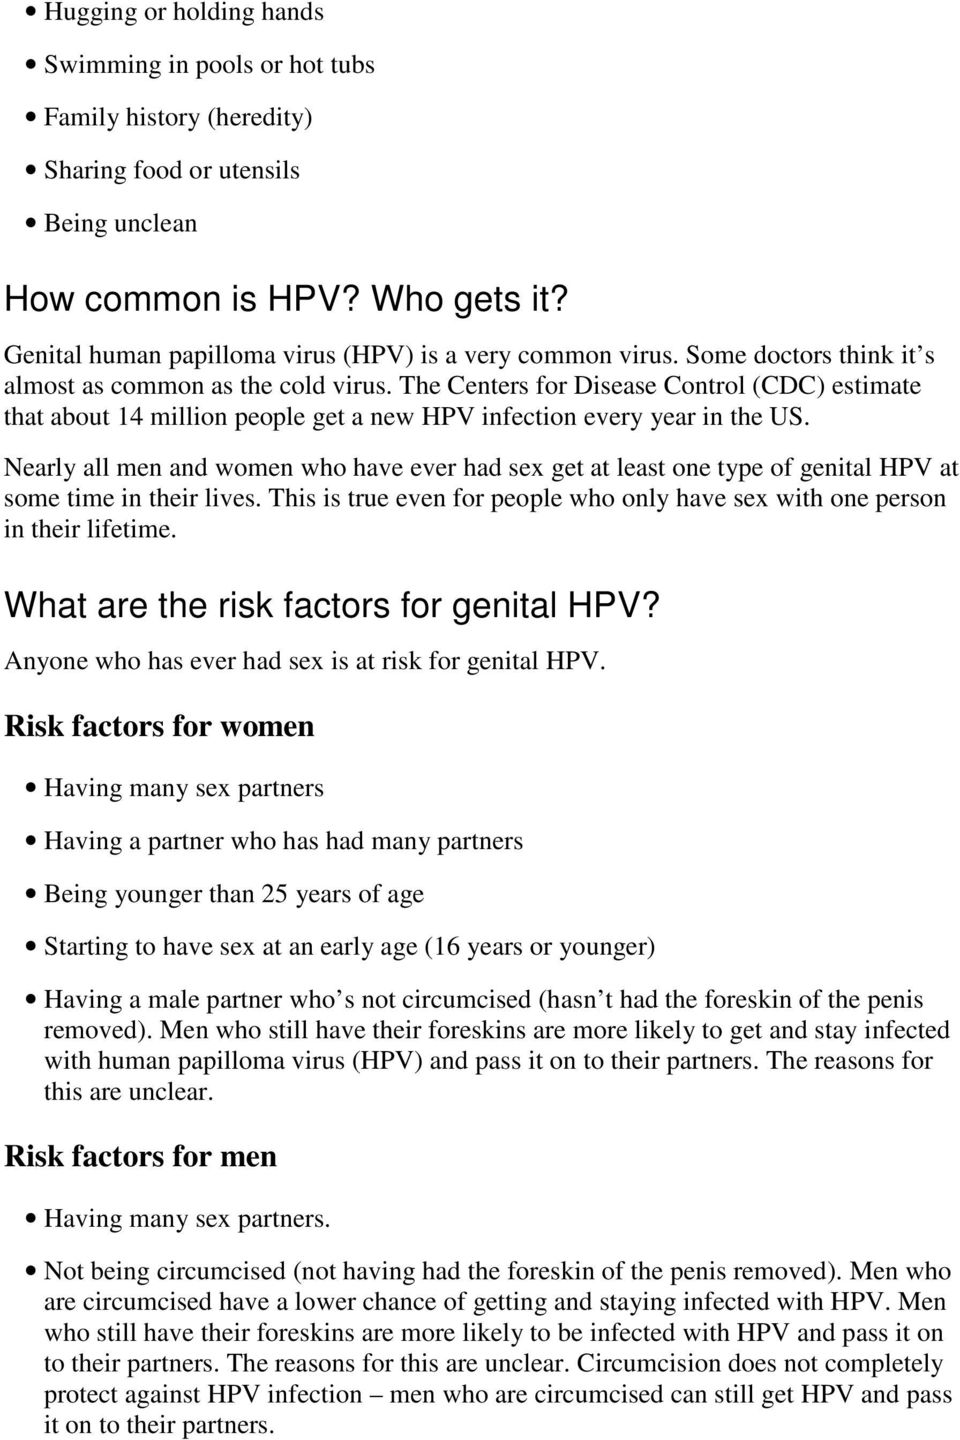 The Centers for Disease Control (CDC) estimate that about 14 million people get a new HPV infection every year in the US.